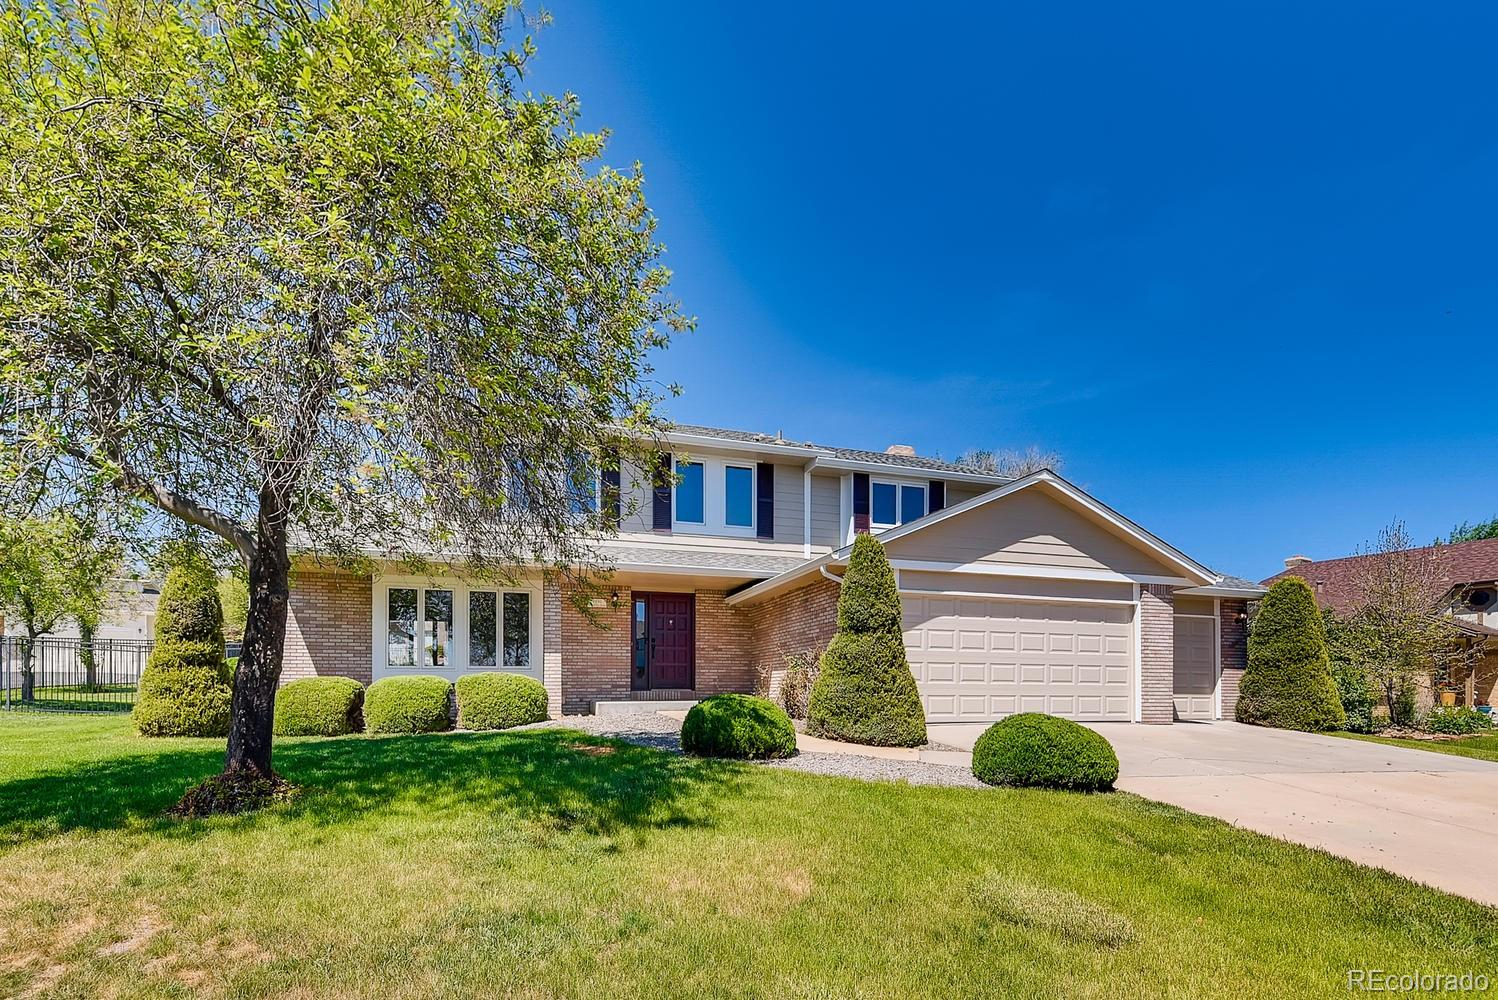 7891 W 109th Avenue, Westminster, CO 80021 - Westminster, CO real estate listing